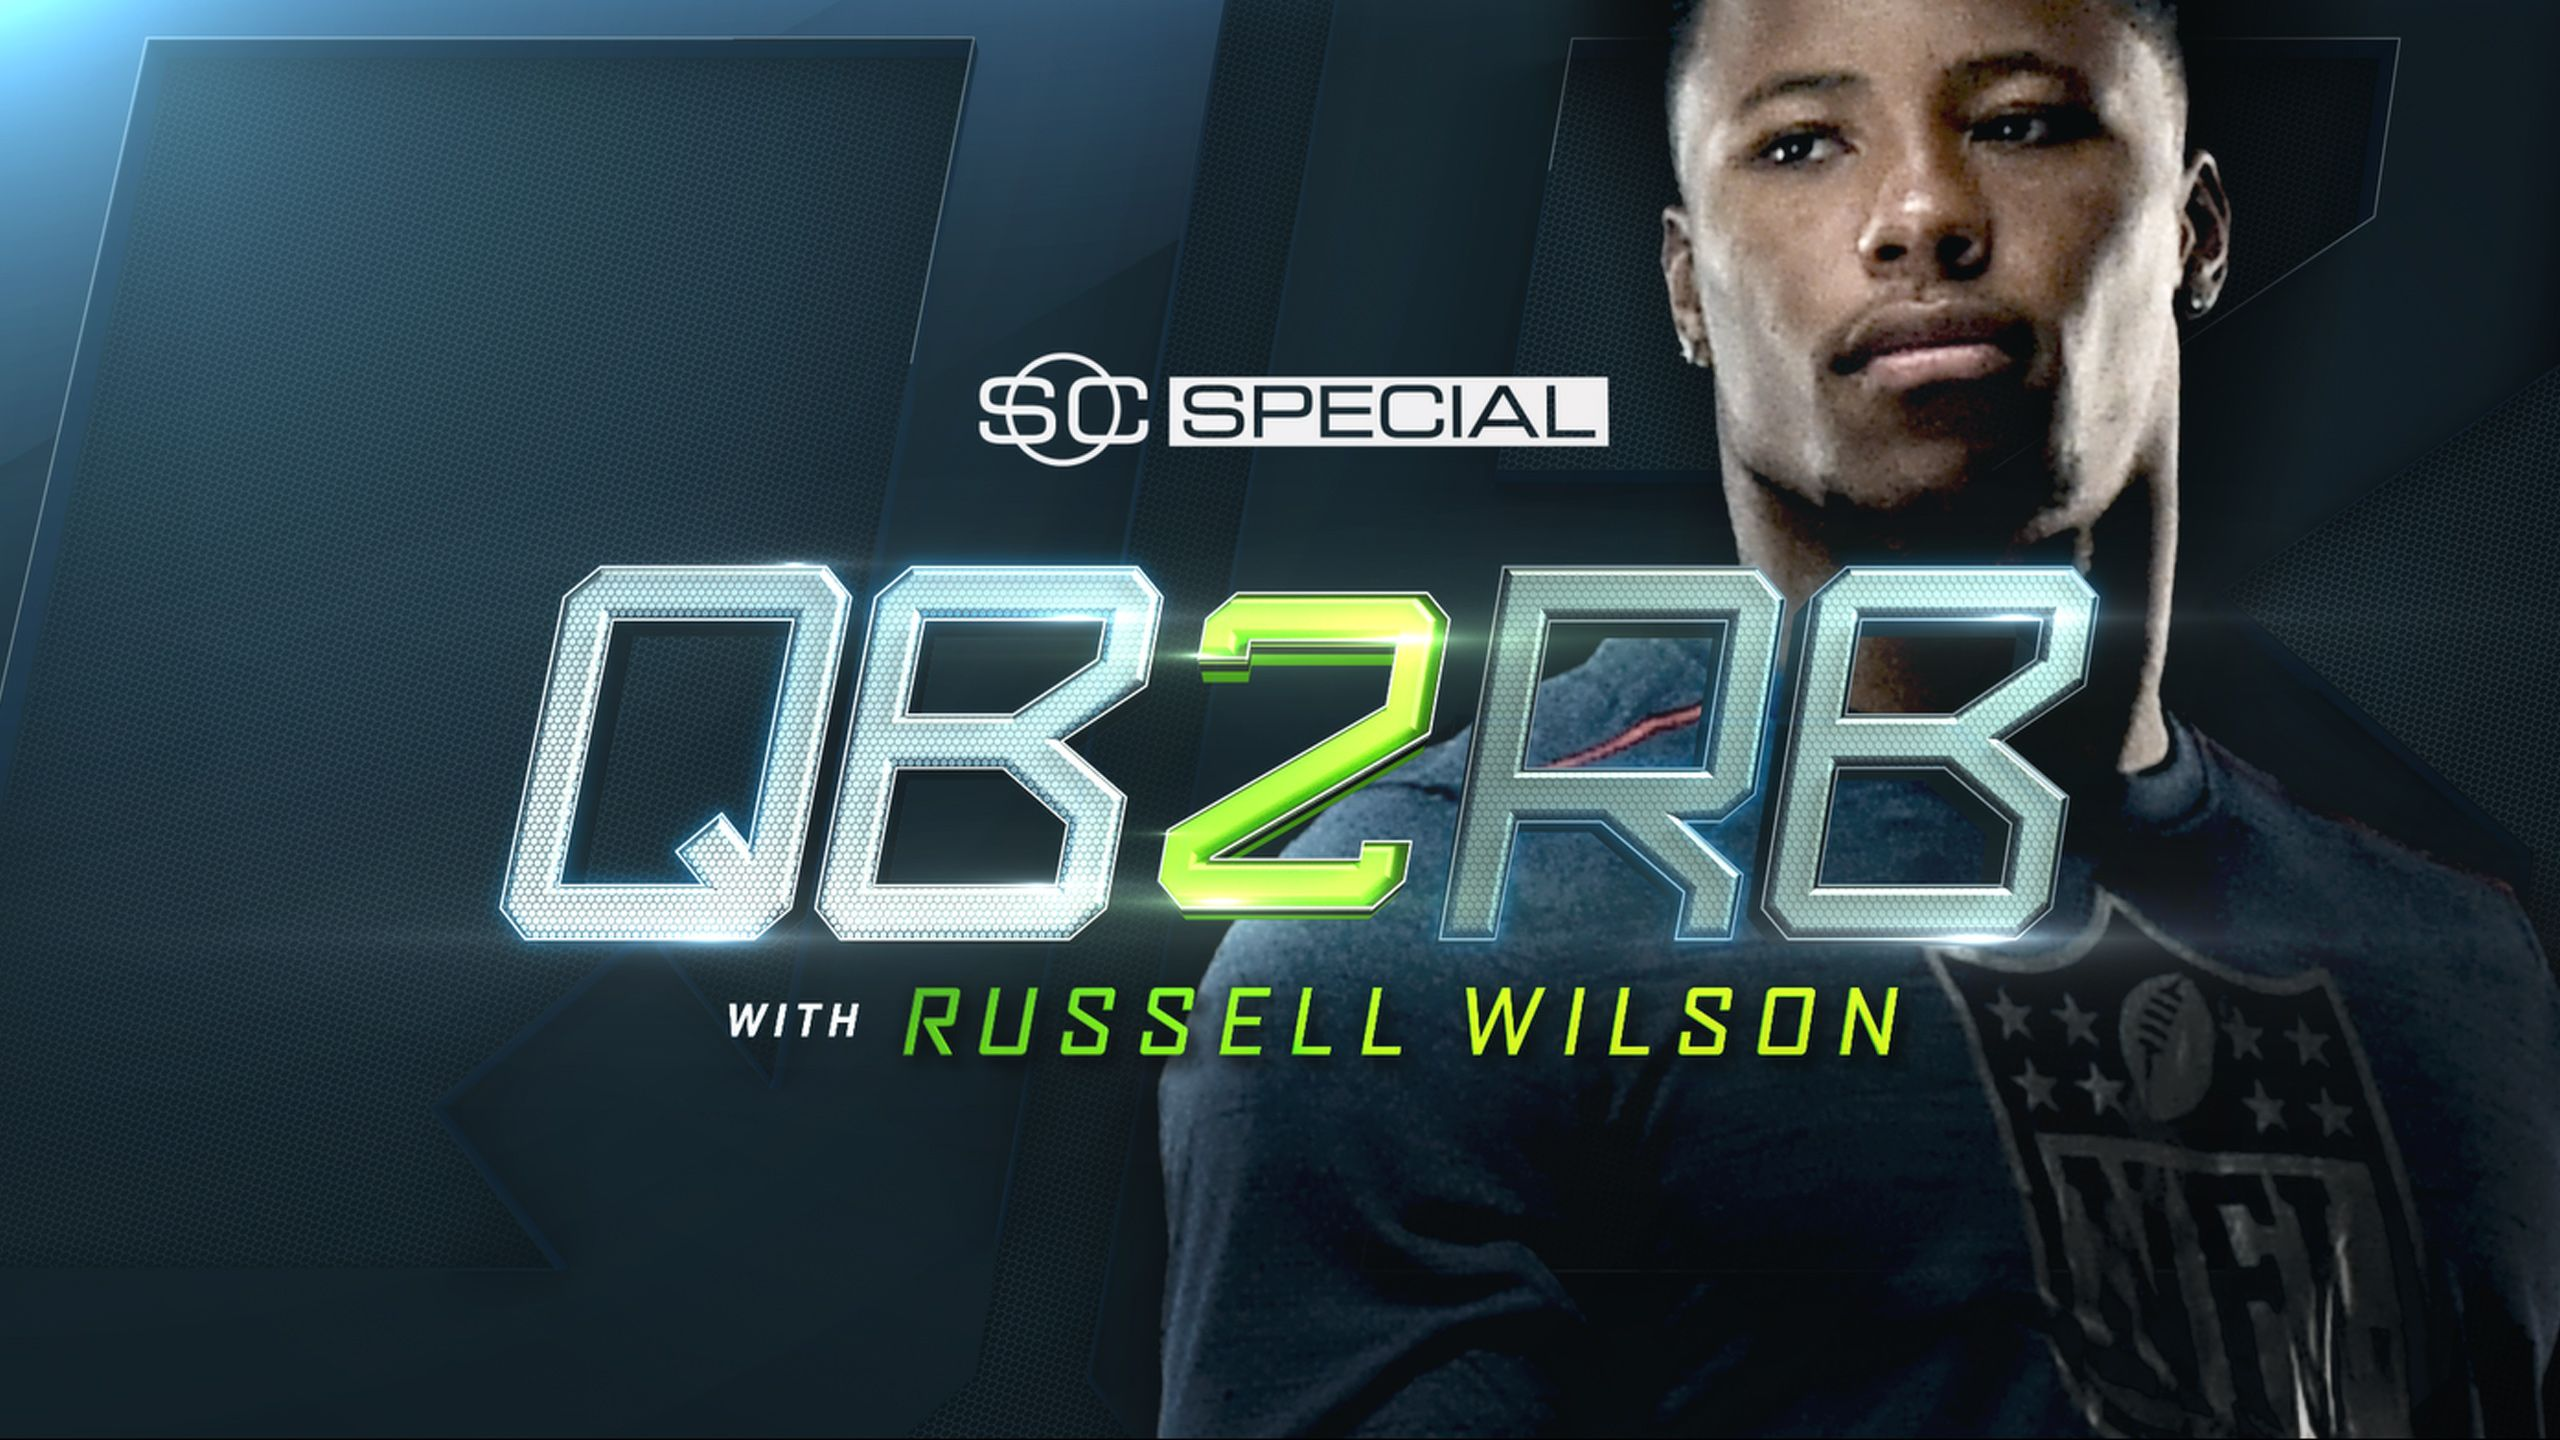 SportsCenter Special presented by Maui Jim Sunglasses: QB2RB with Russell Wilson and Saquon Barkley